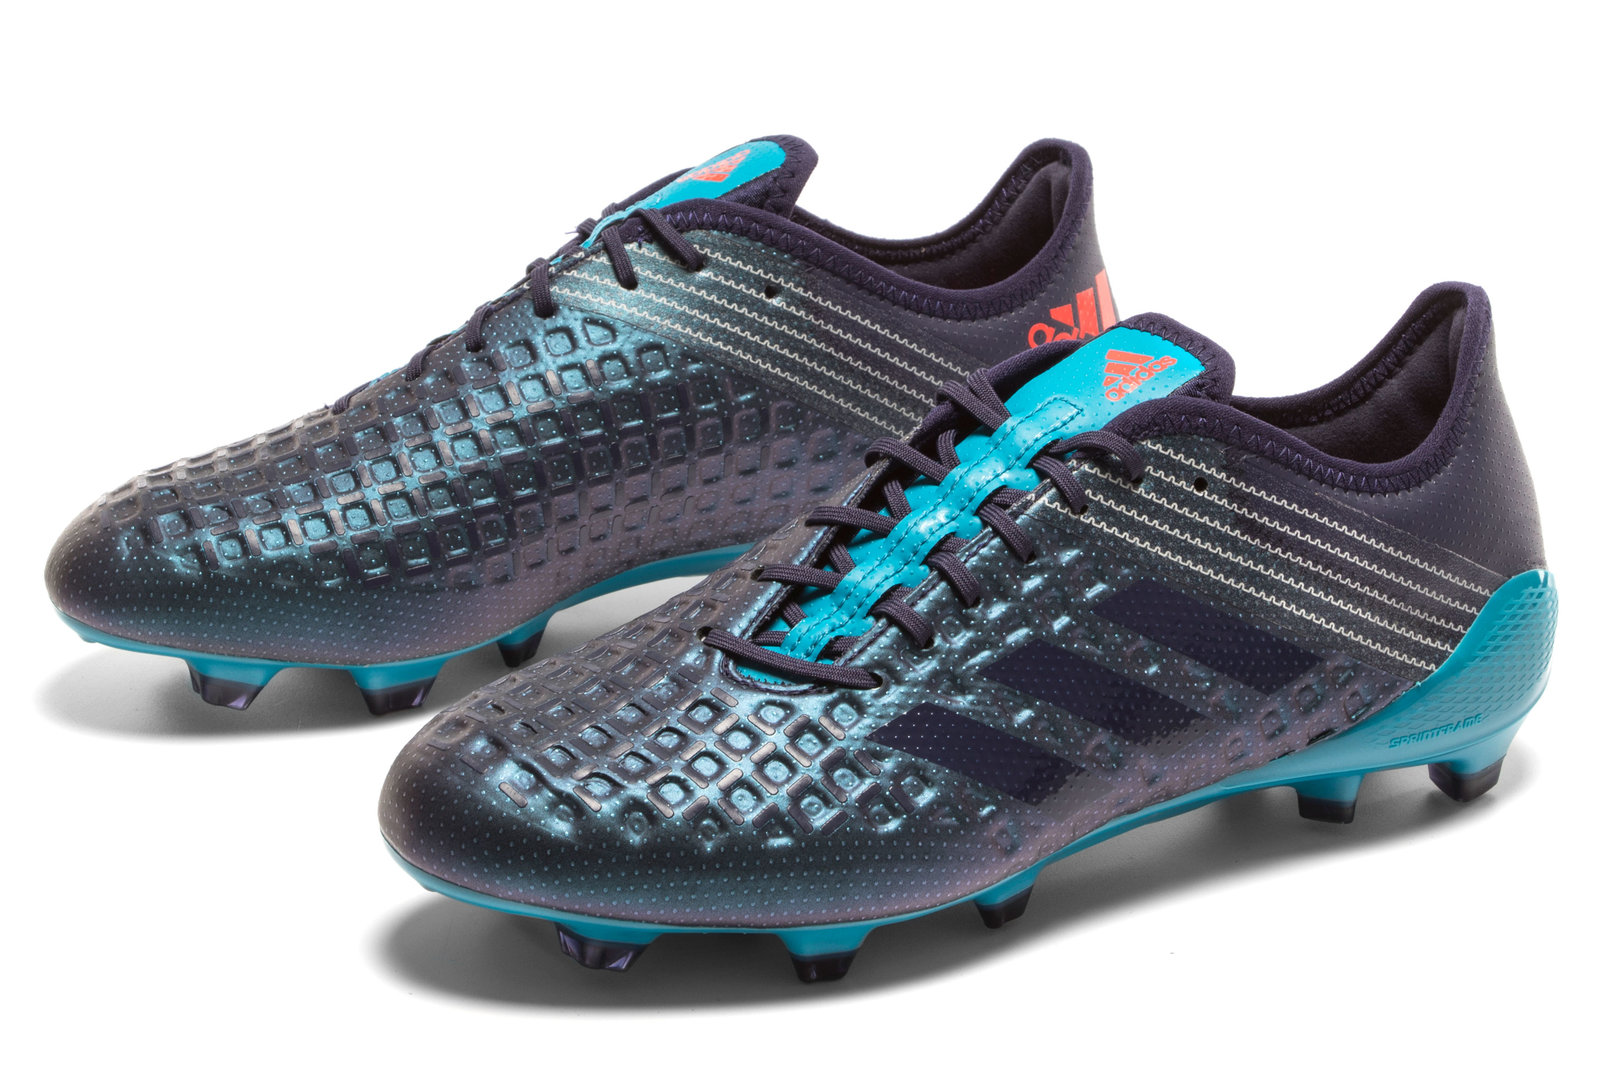 695ce8a85f19 ... coupon code adidas mens predator malice control fg rugby boots shoes  footwear sport training 7ff67 7b5be